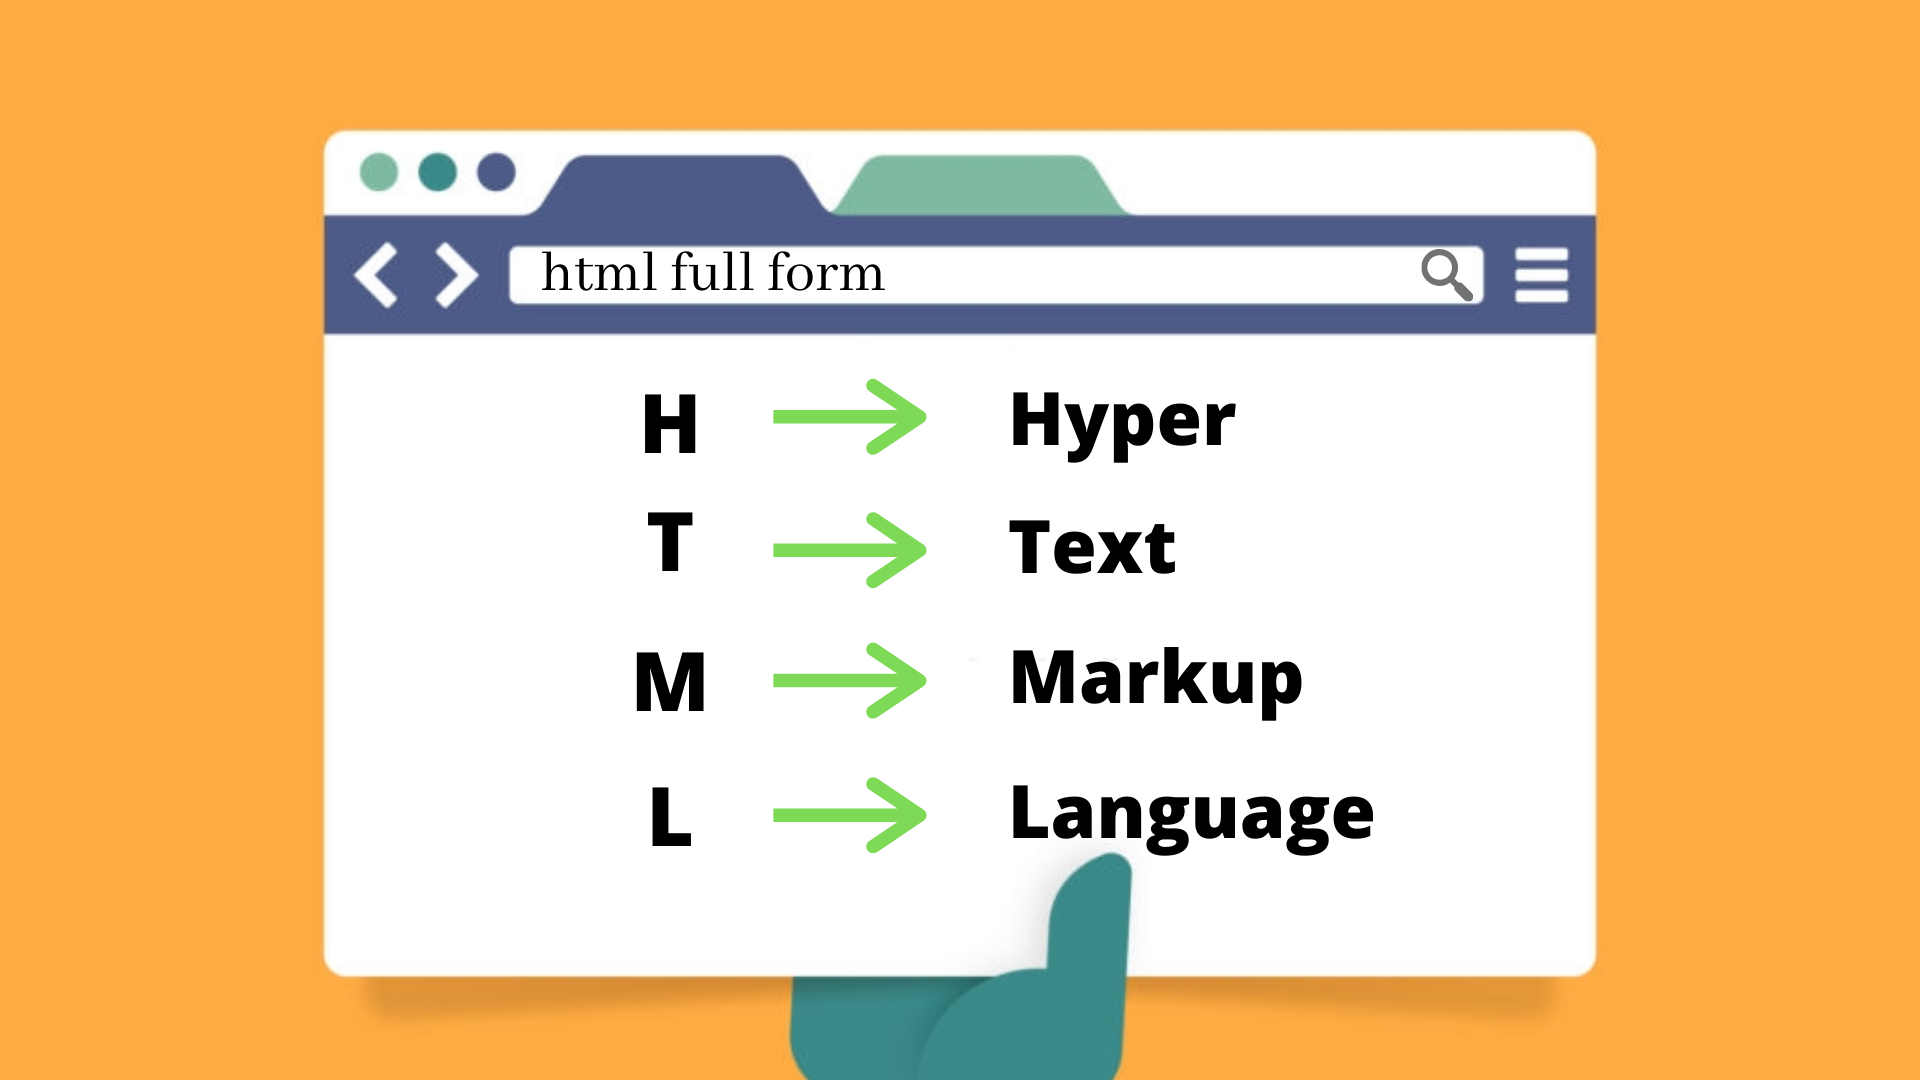 html full form - HTML Full Form | What is HTML Full Form